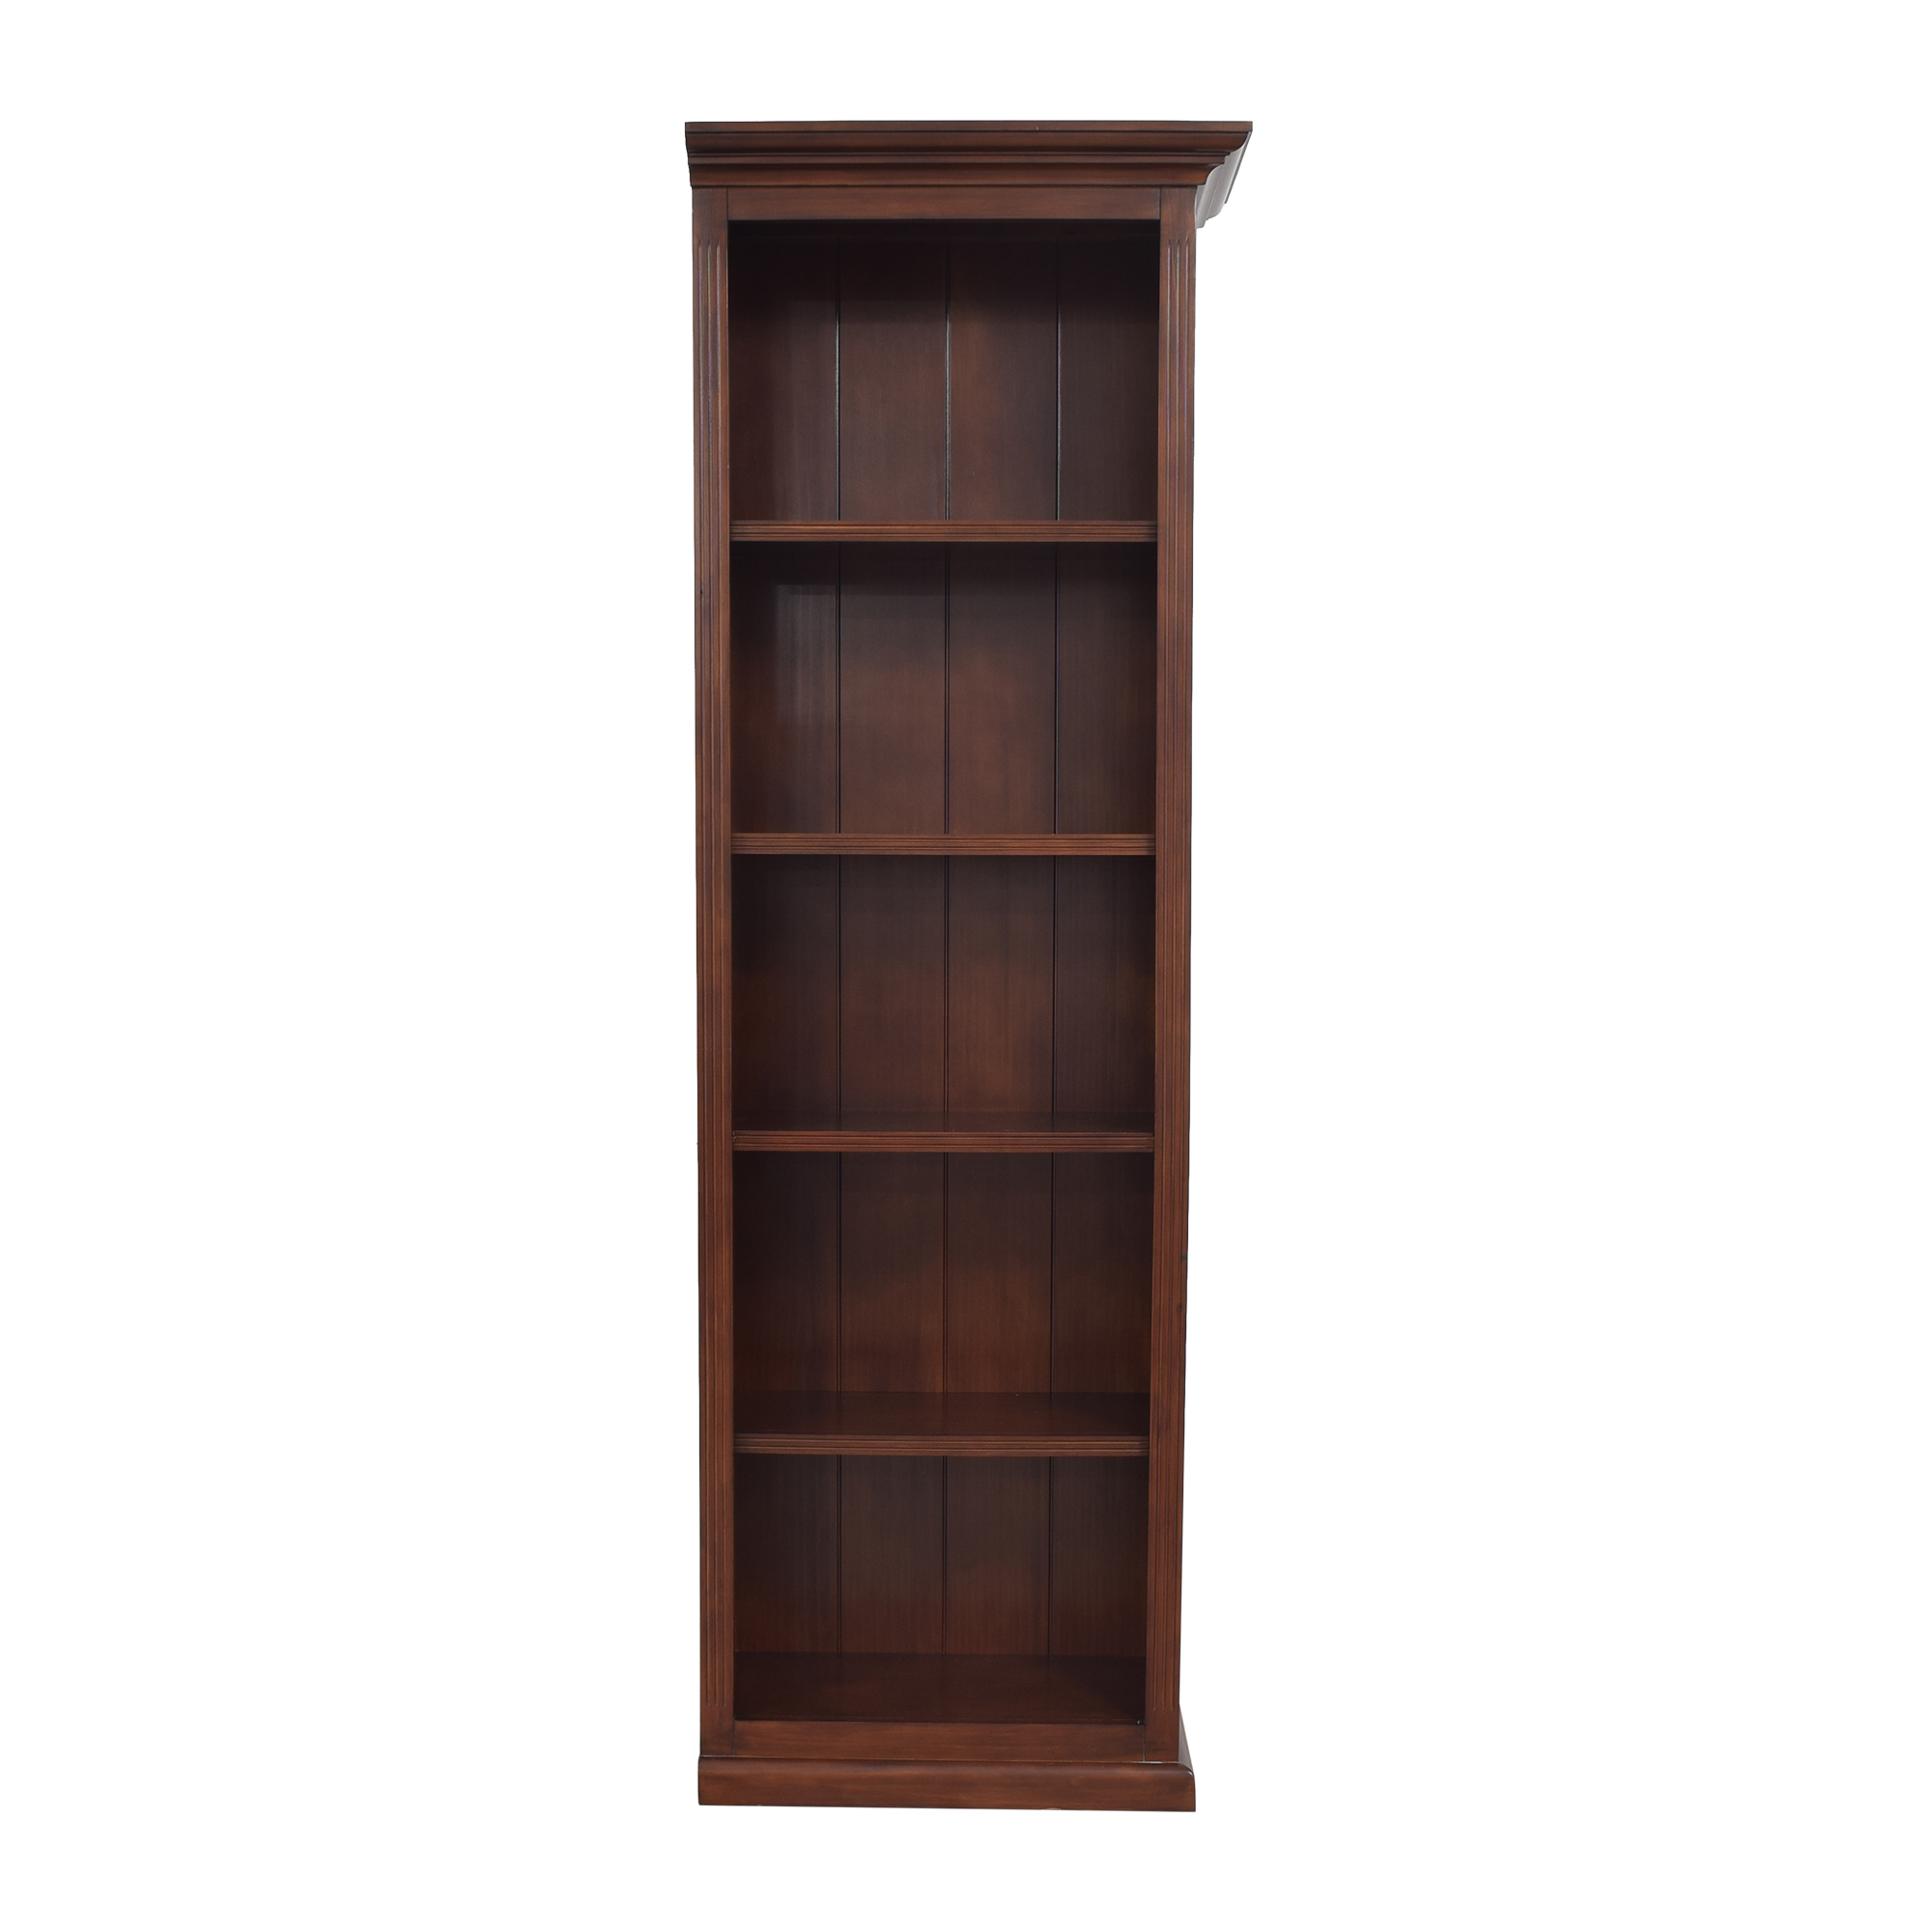 Ballard Designs Ballard Designs Tuscan Right Bookcase brown